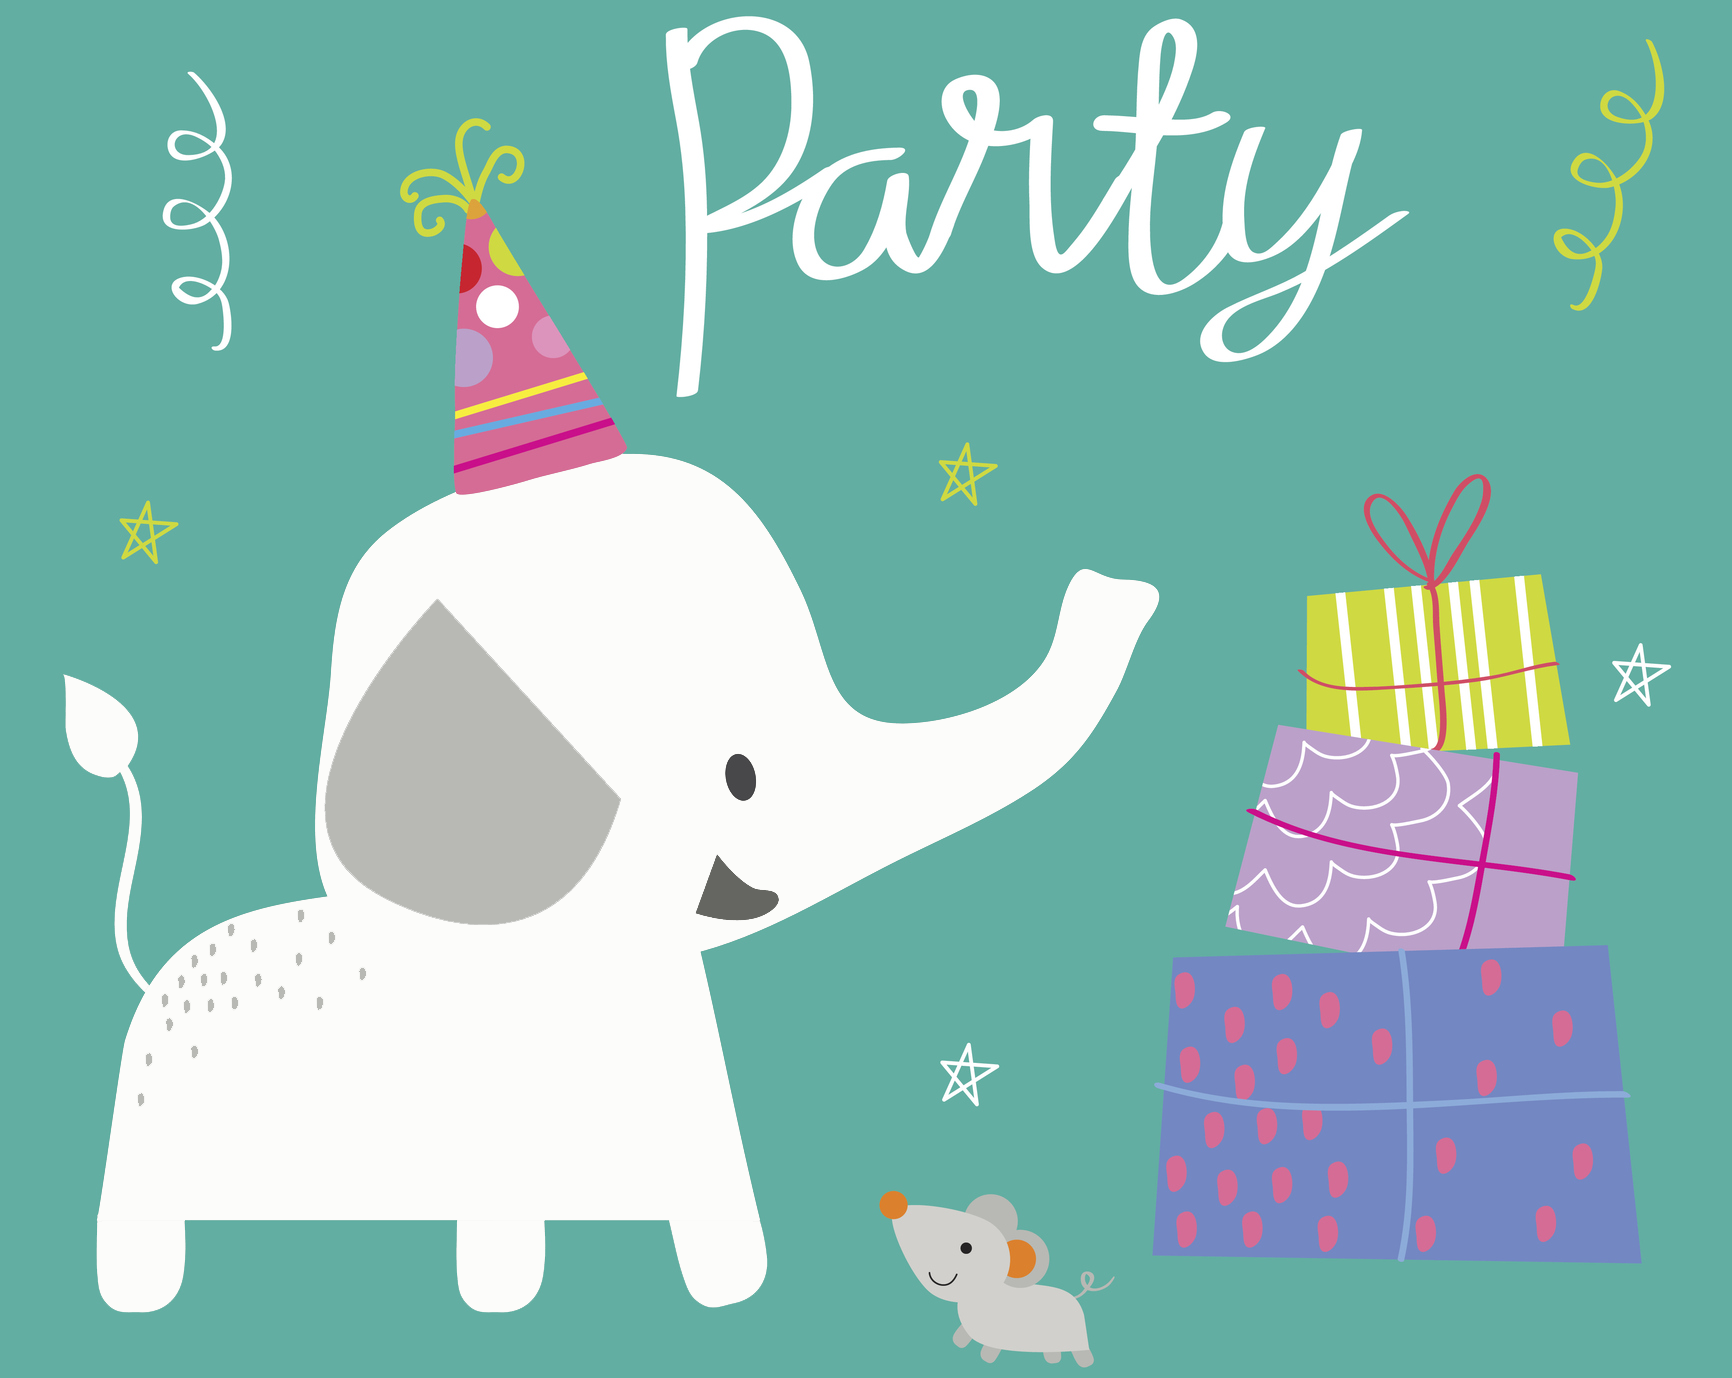 Ditch the gift and have some fun: The White Elephant Party.